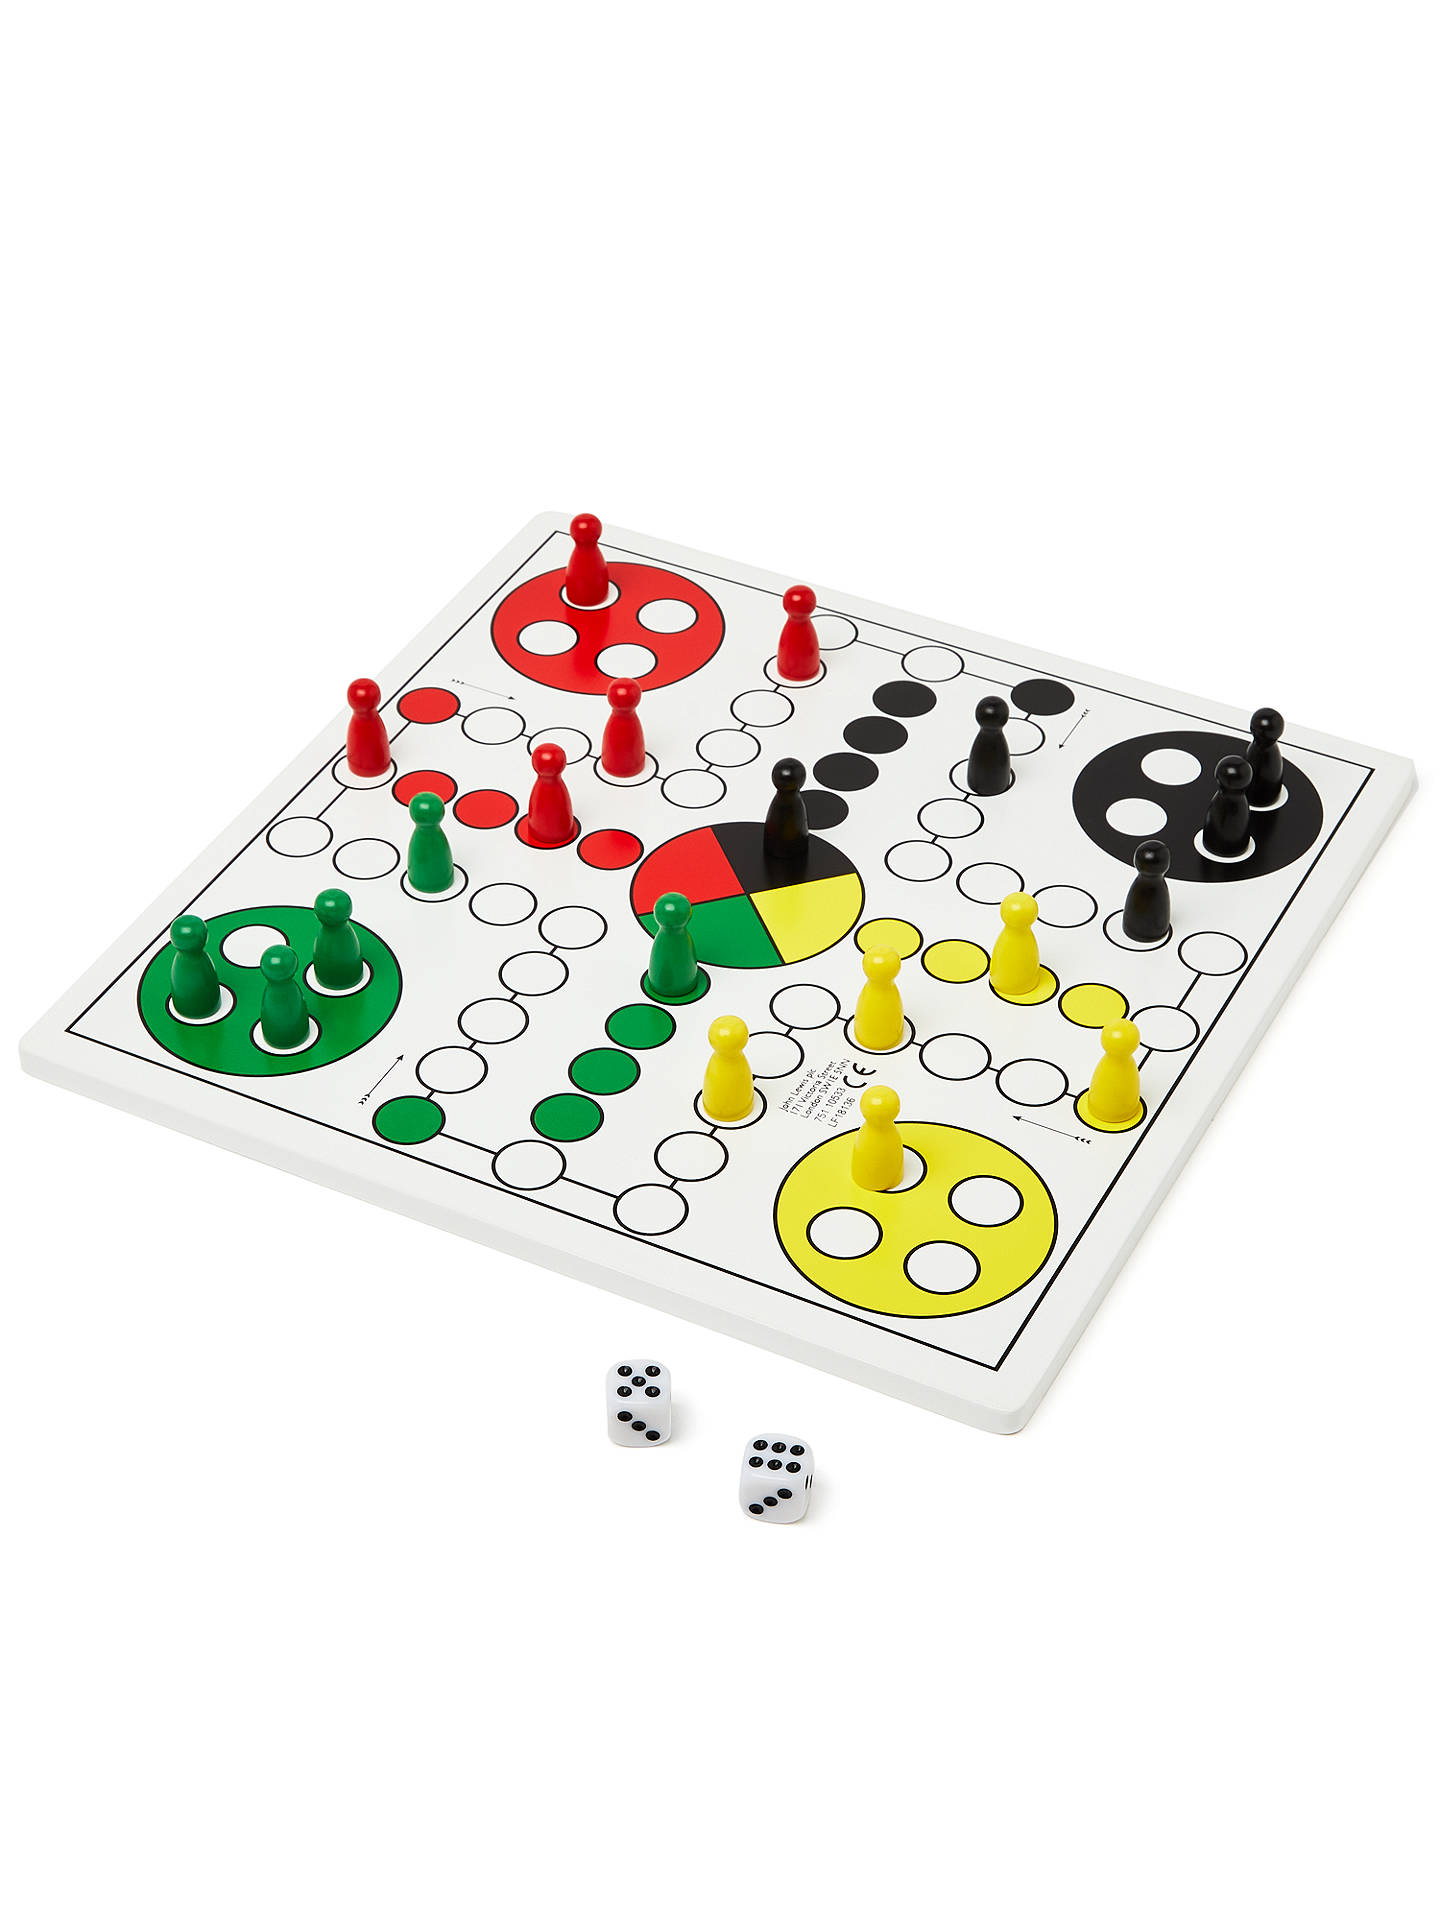 98f37f1f0151 ... Buy John Lewis & Partners Snakes and Ladders and Ludo Game Online at  johnlewis. ...